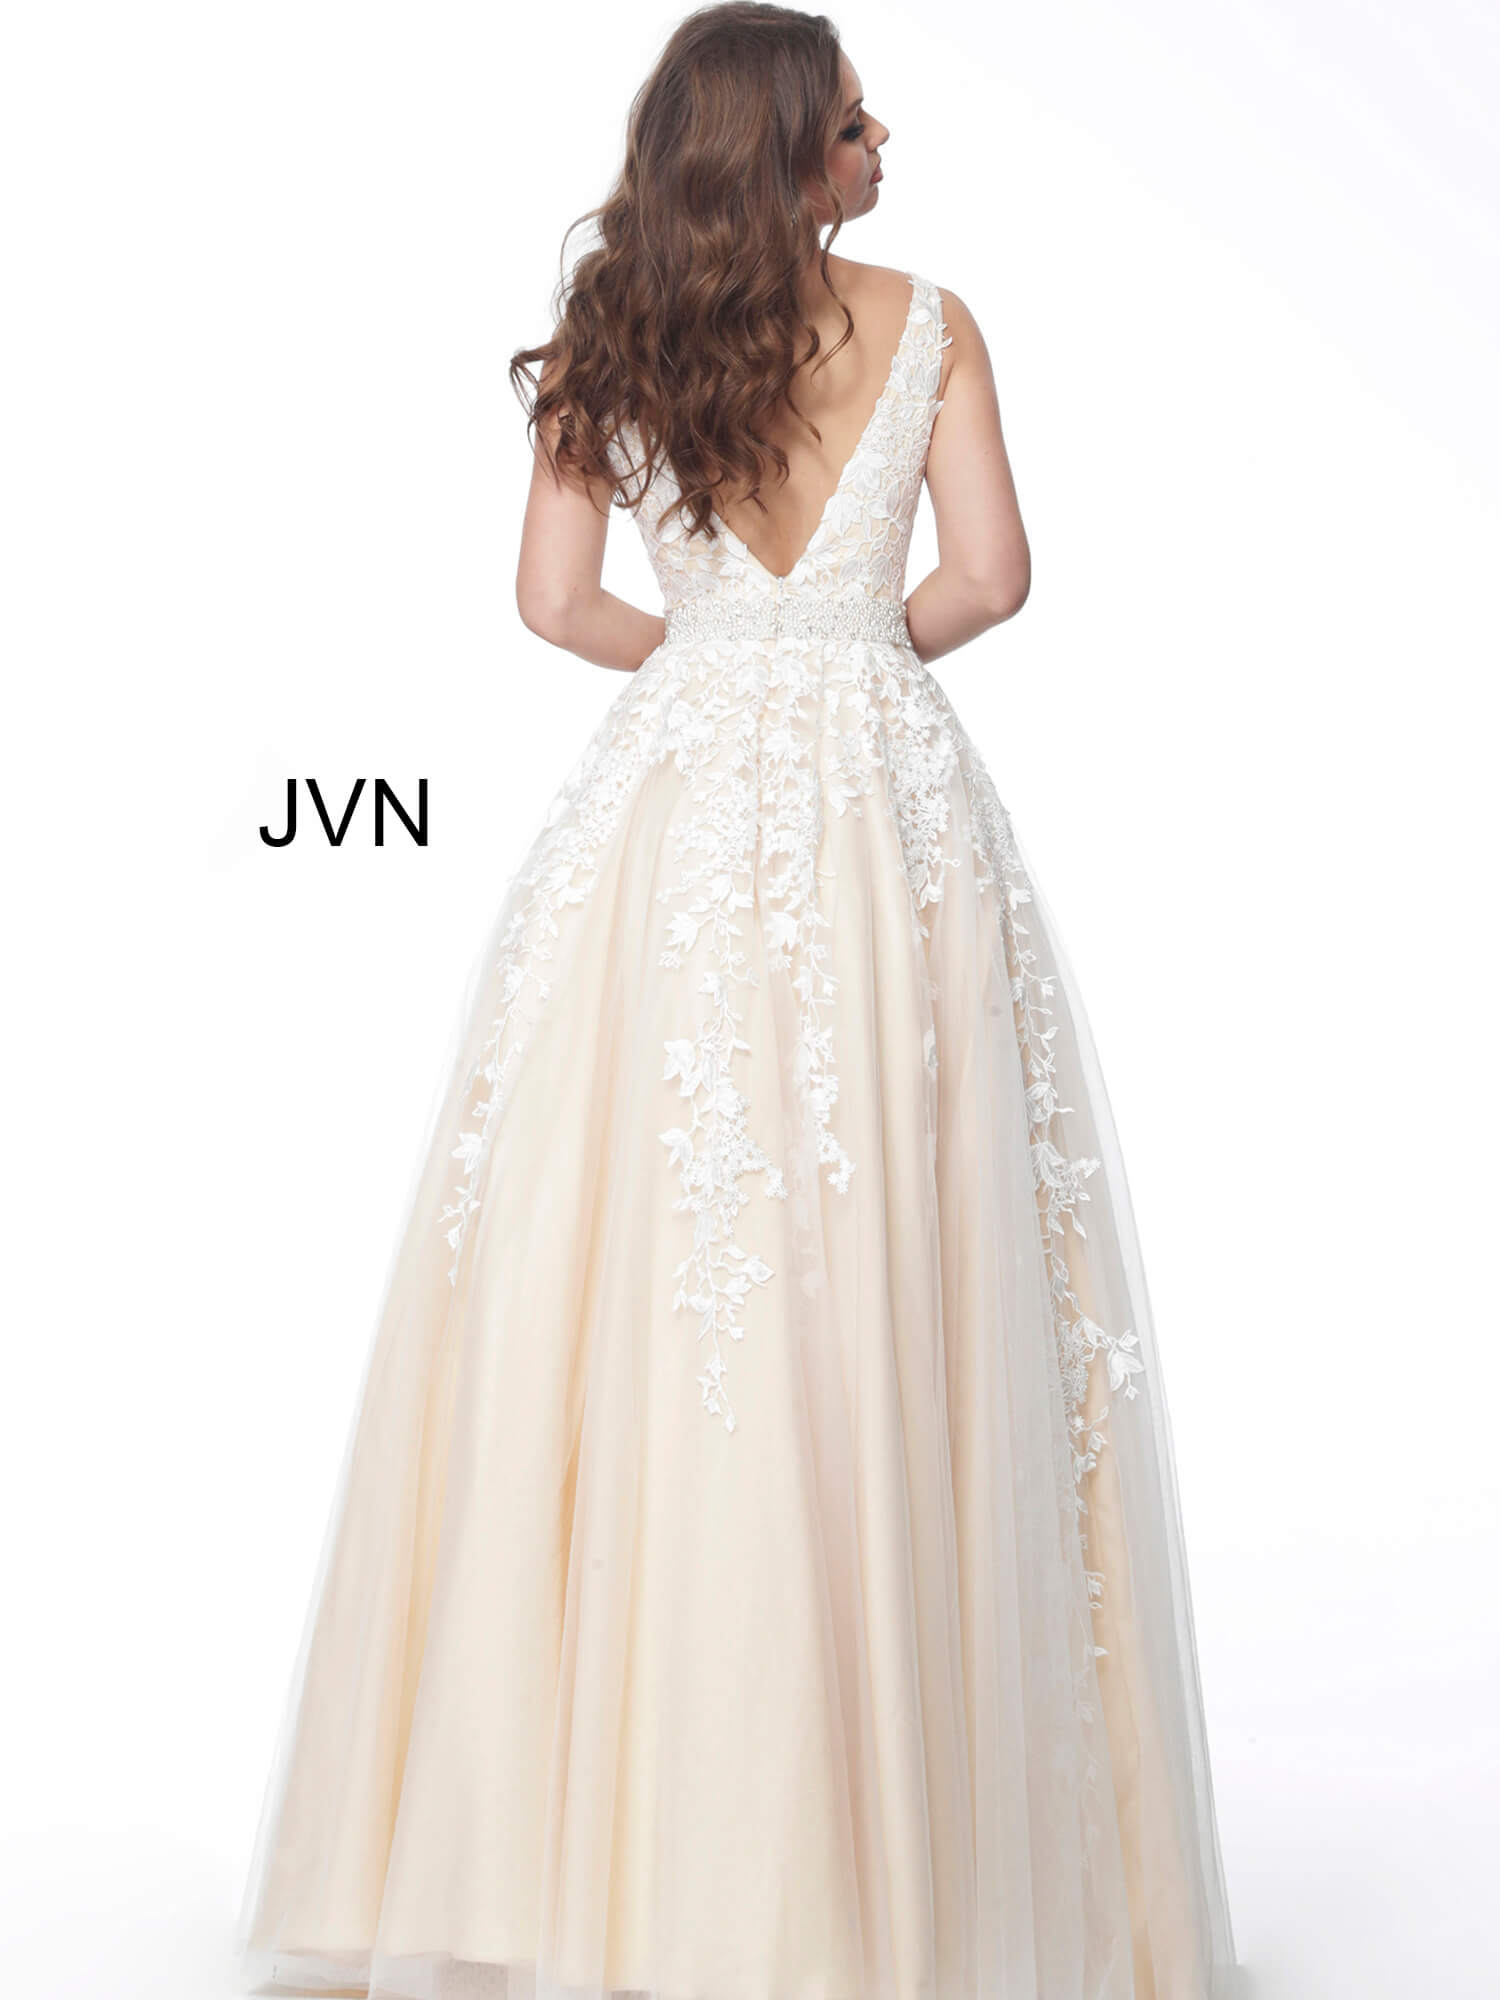 4d21906b1ddfa0 Off white nude long floral lace bodice plunging neck ballgown jvn68258.